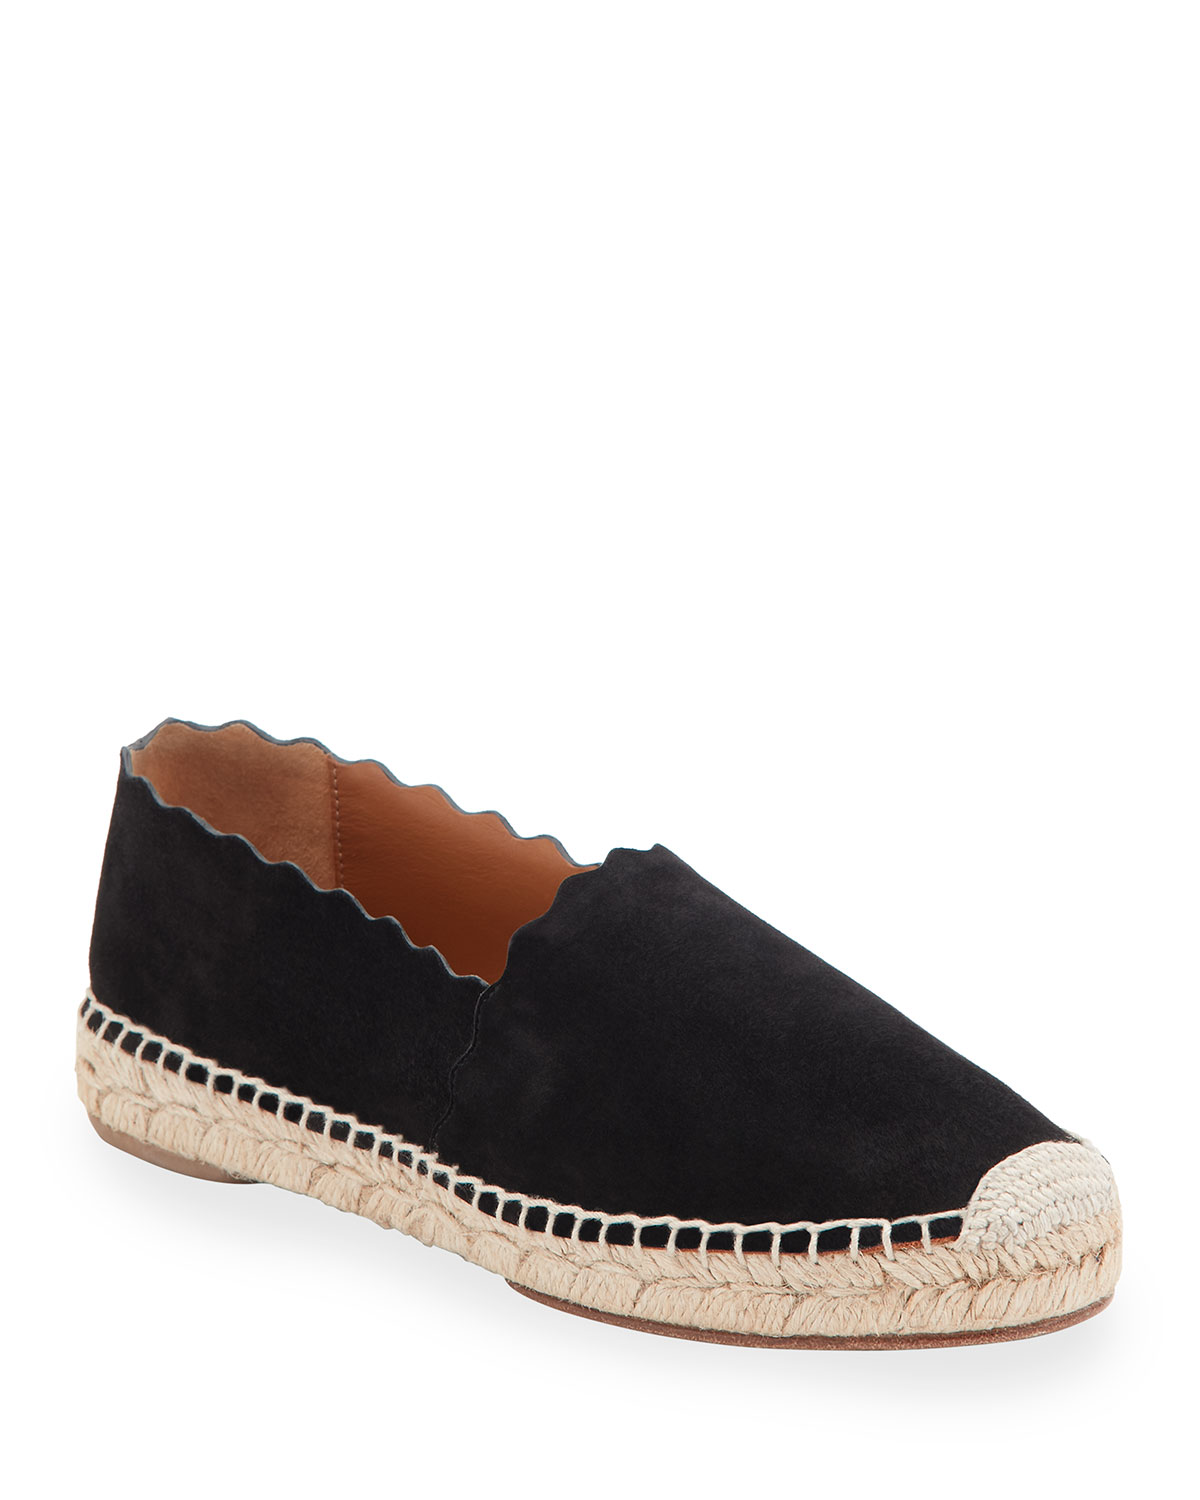 337b3402df Lauren Scalloped Espadrille Flat